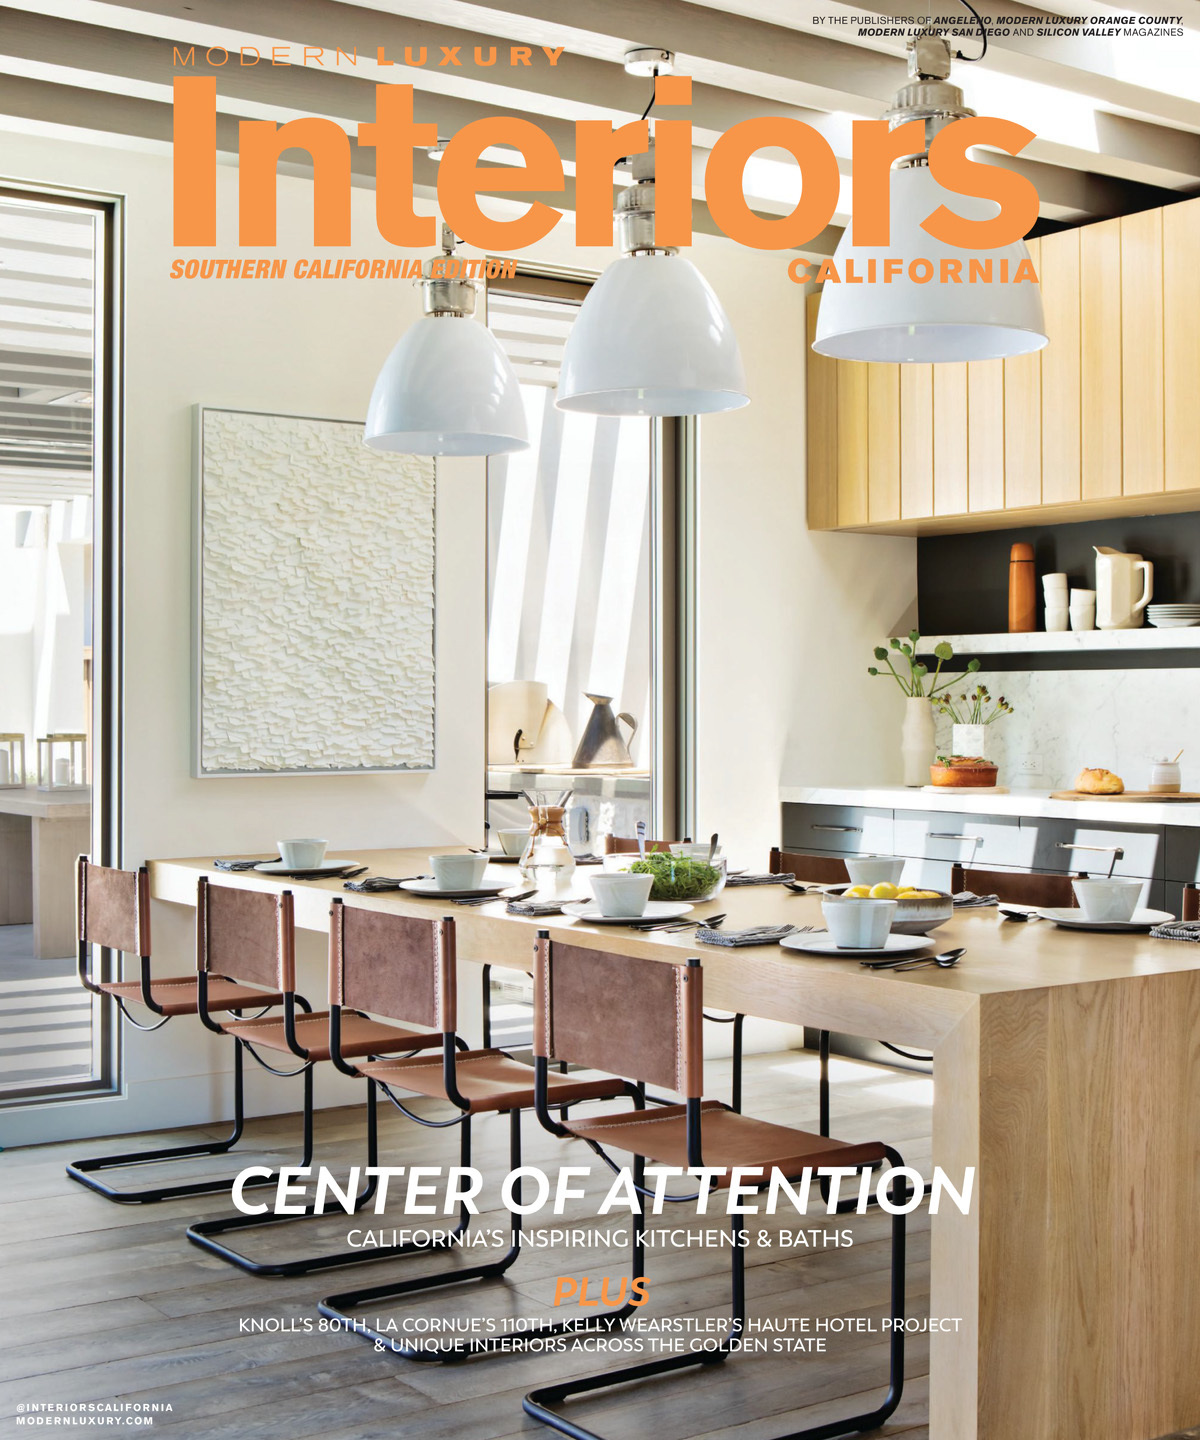 HBCA Interiors California Southern Edition October 2018-1.jpg